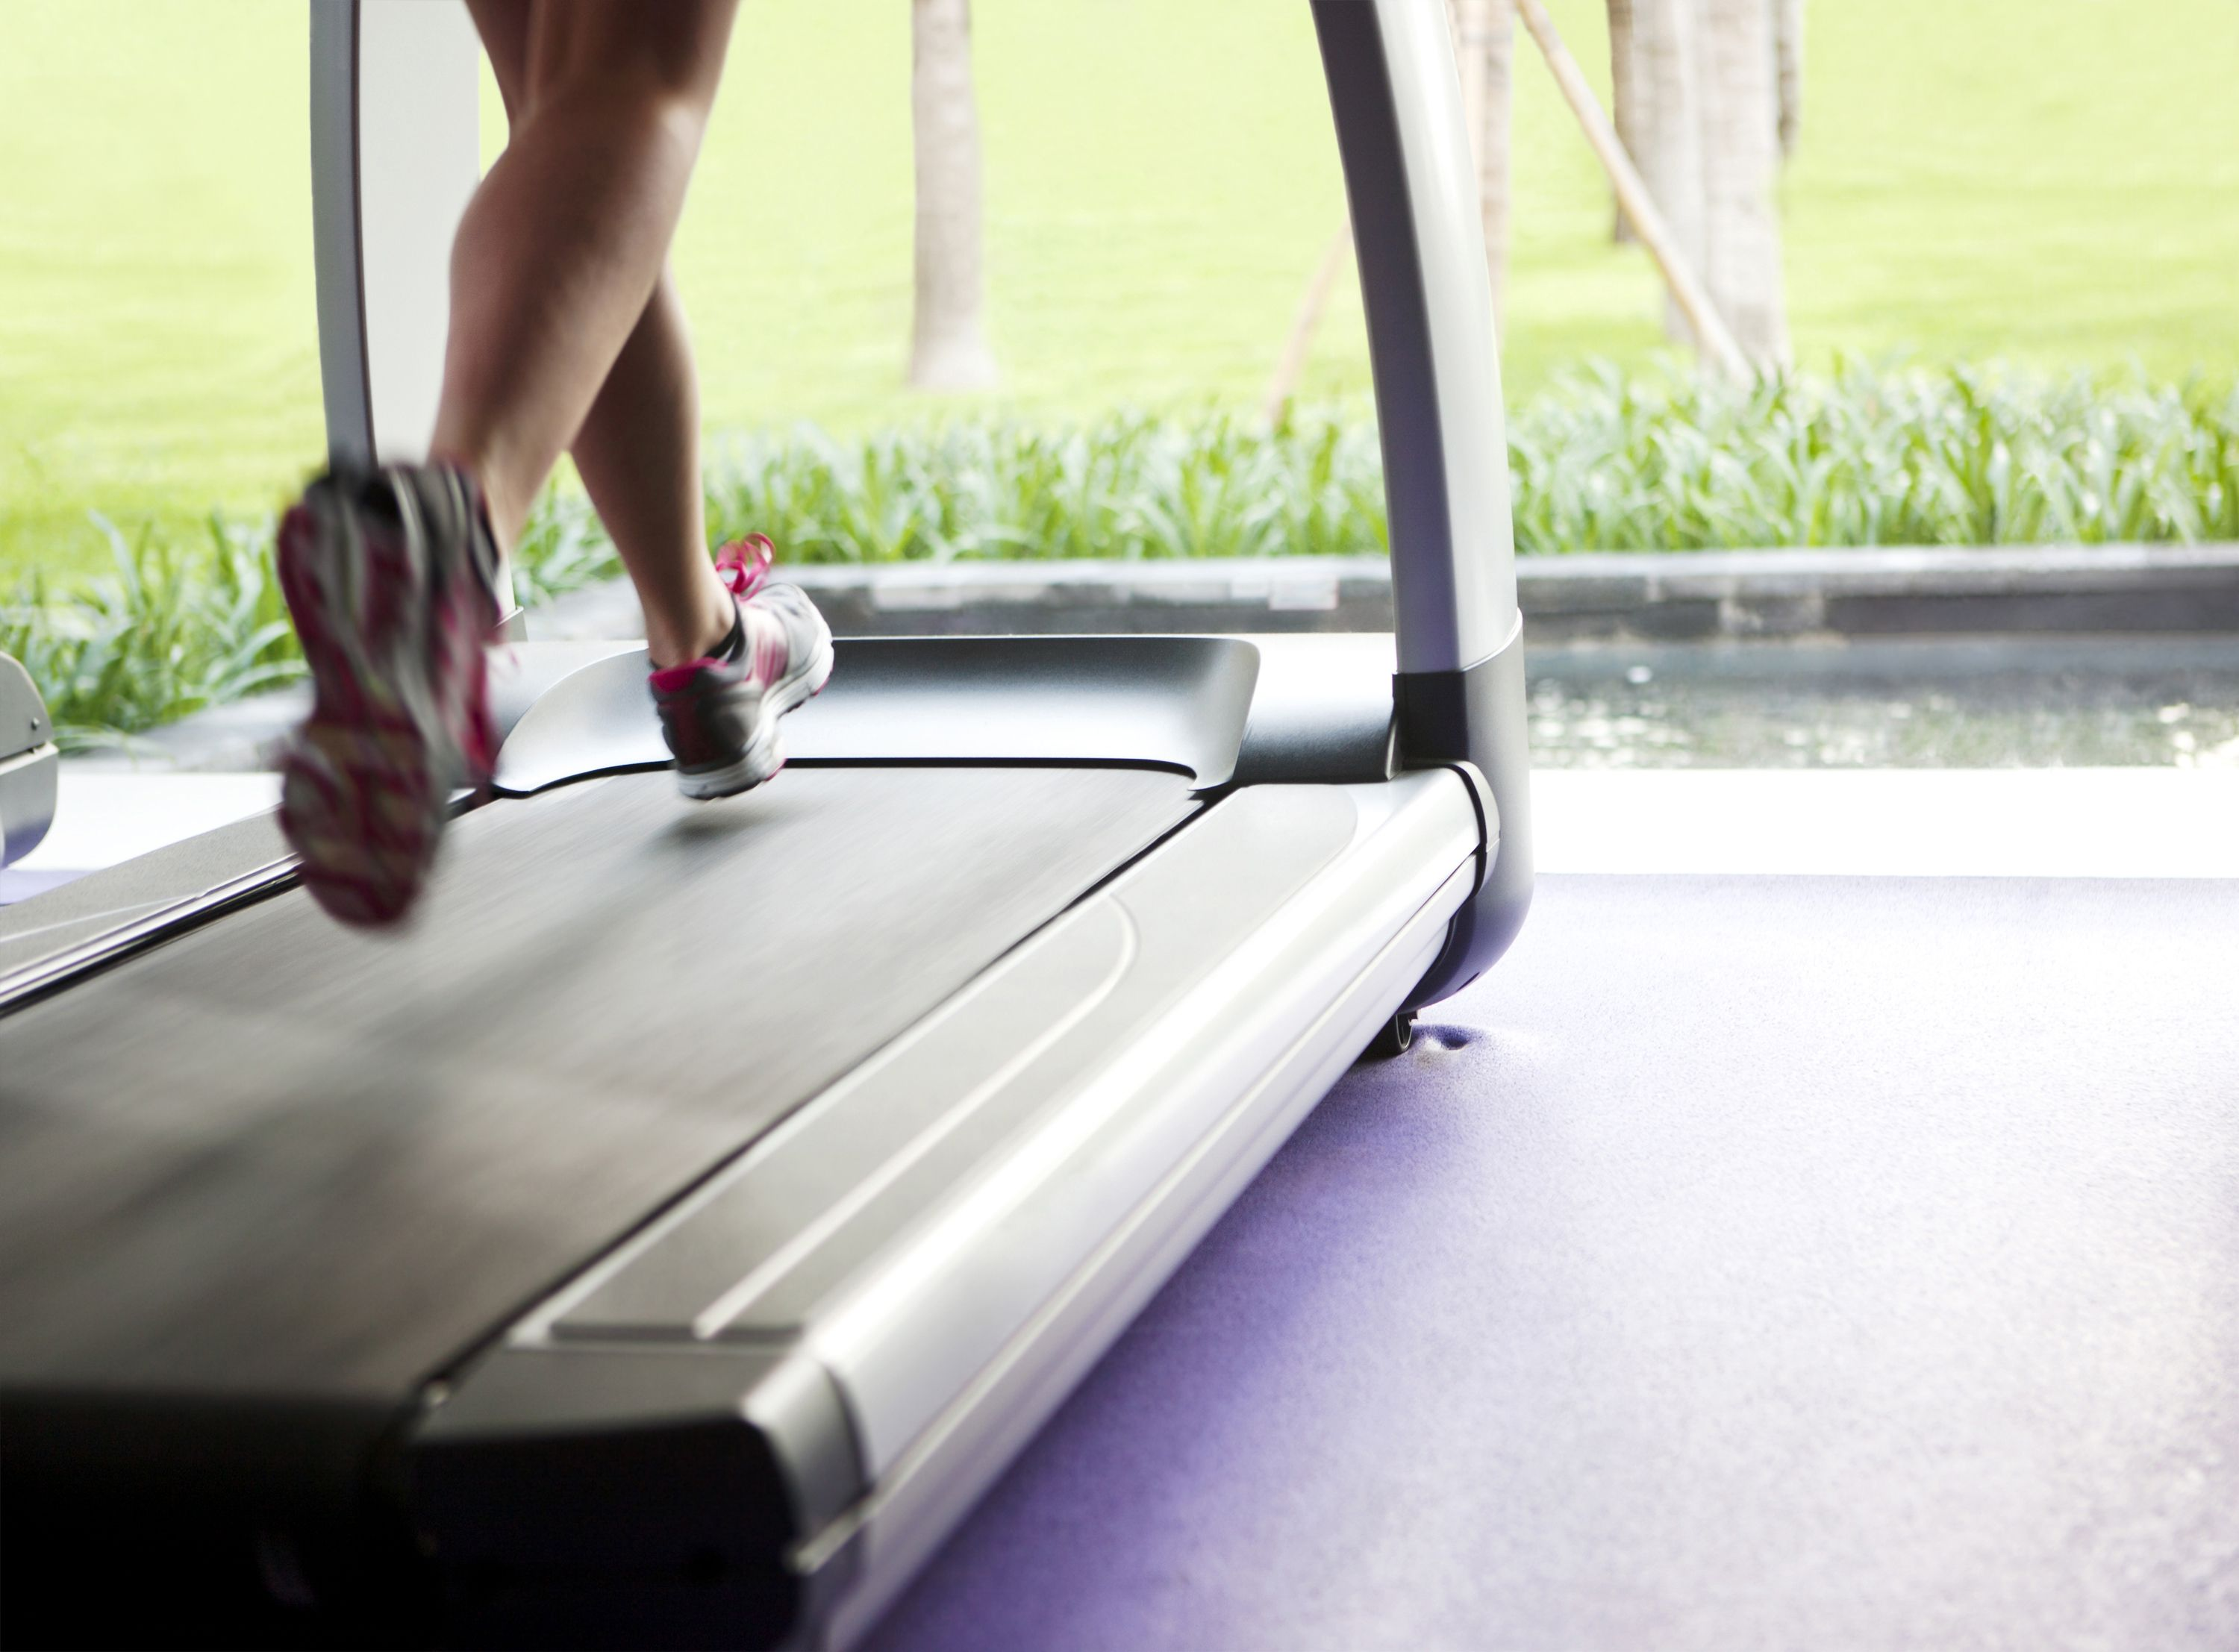 Woman running on treadmill developing the habit of exercise